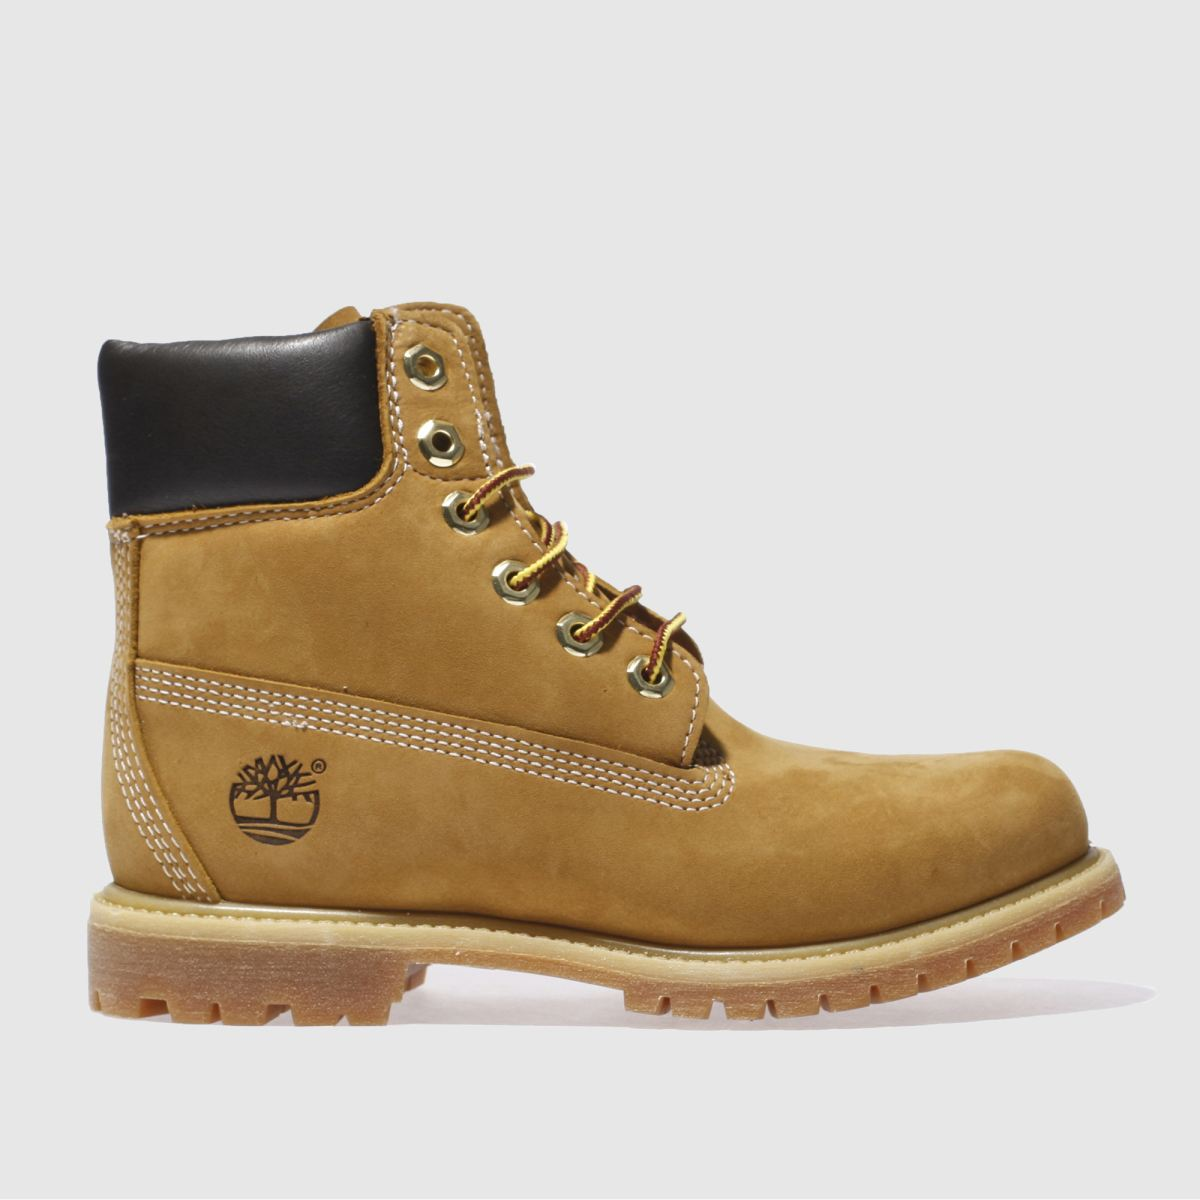 The Shoes Timberland Girls